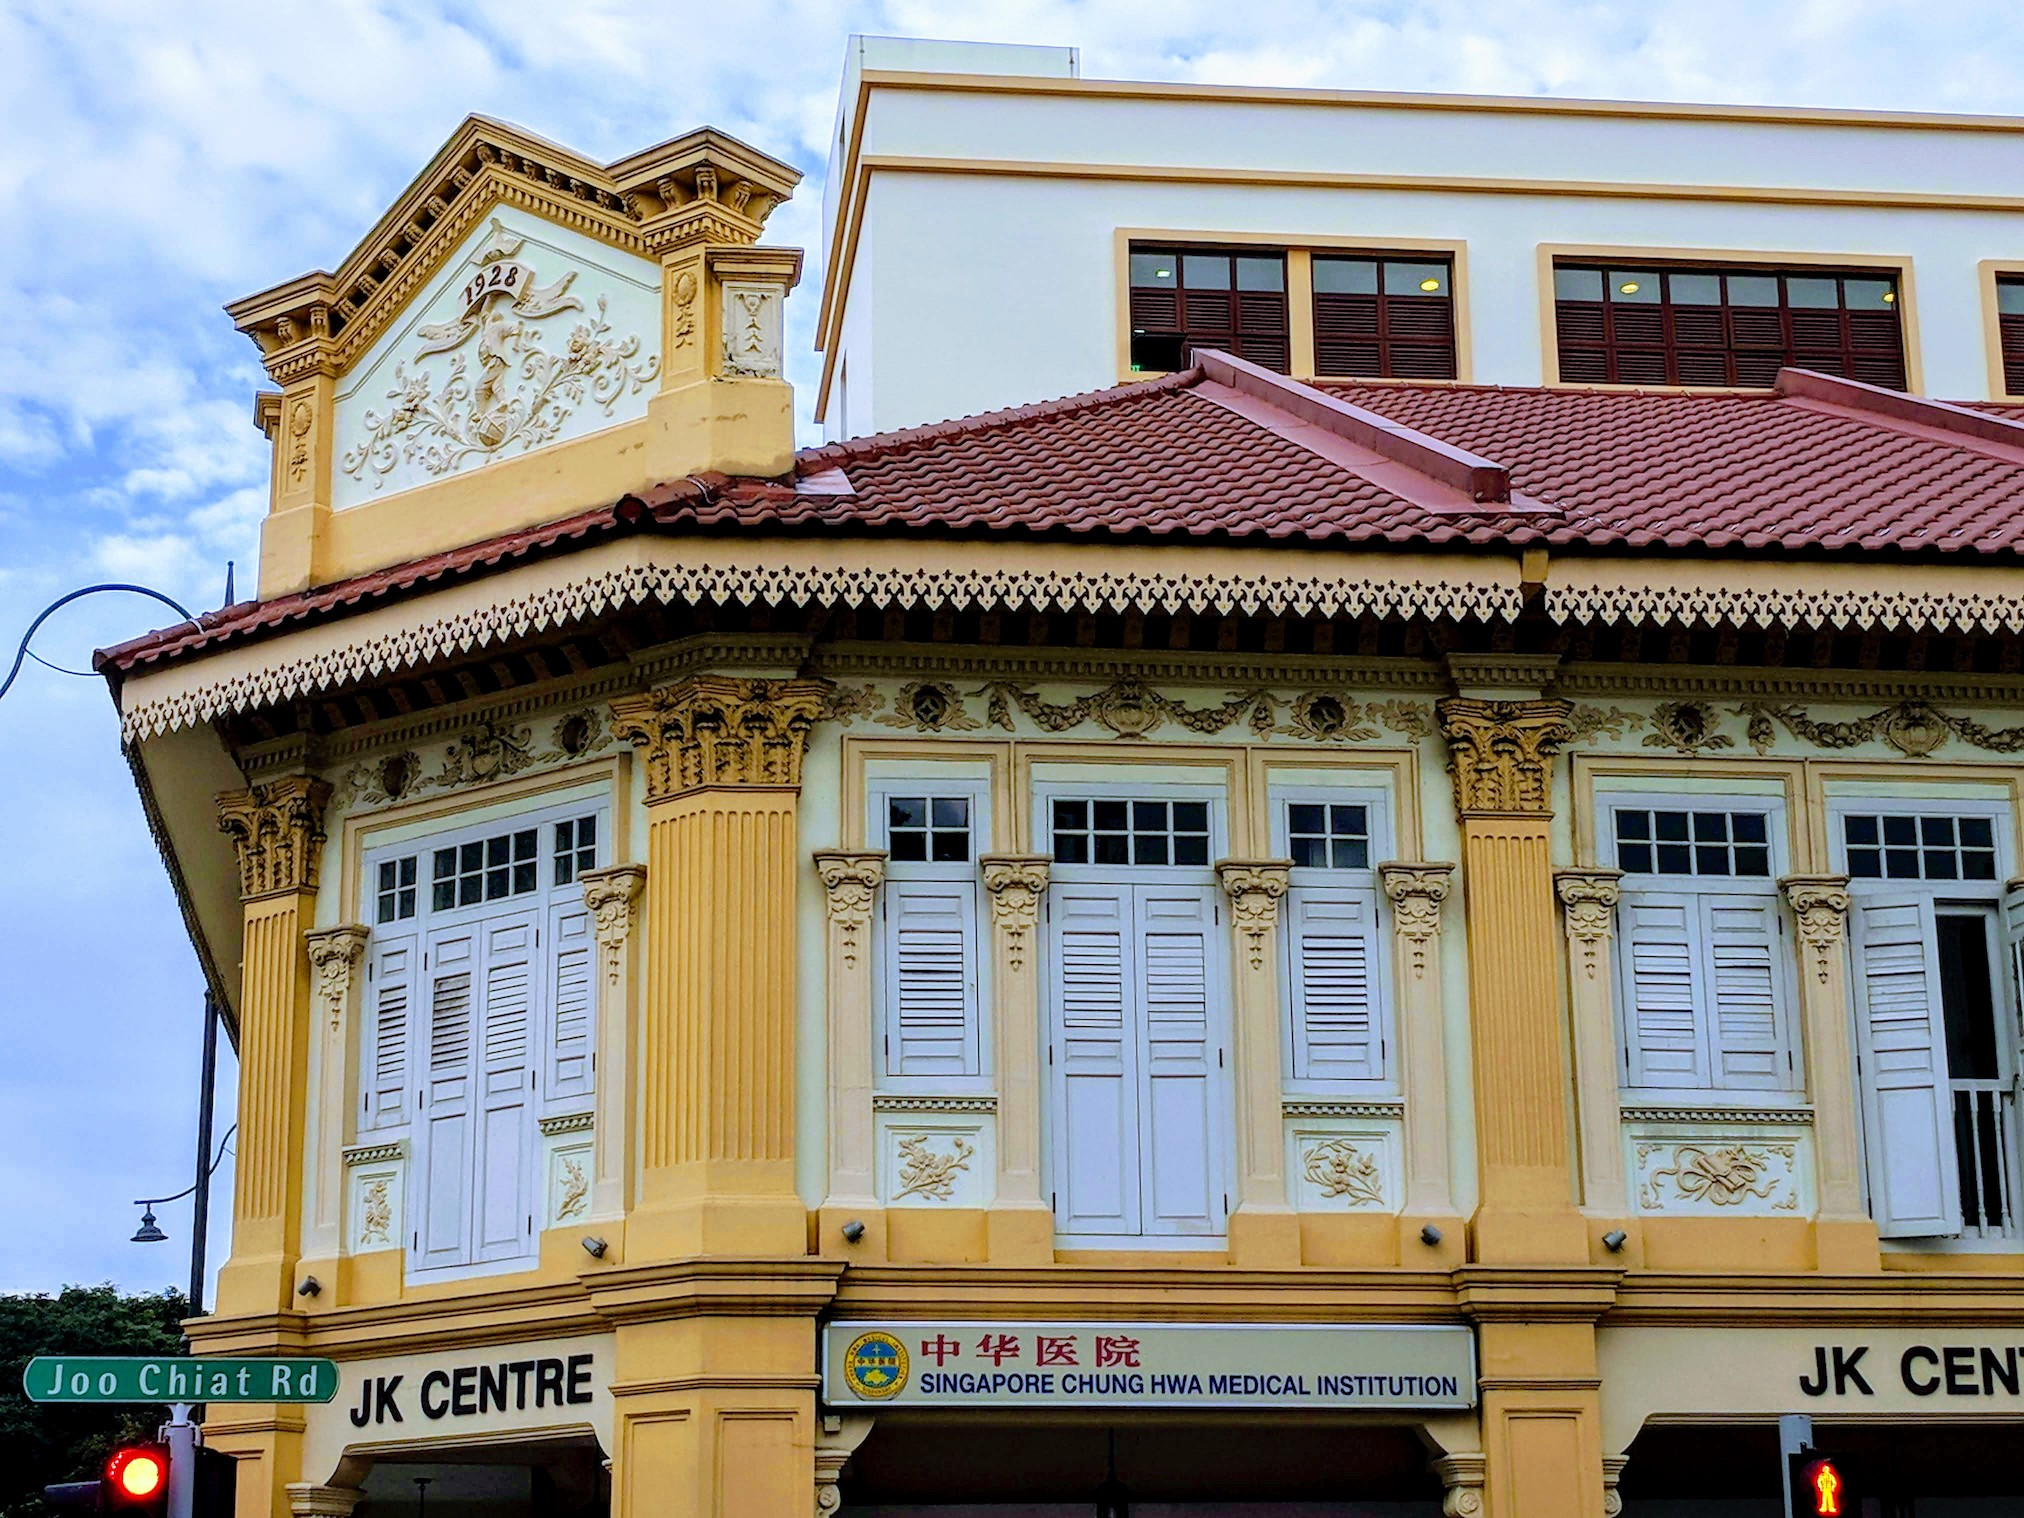 JOO CHIAT RD, SINGAPORE